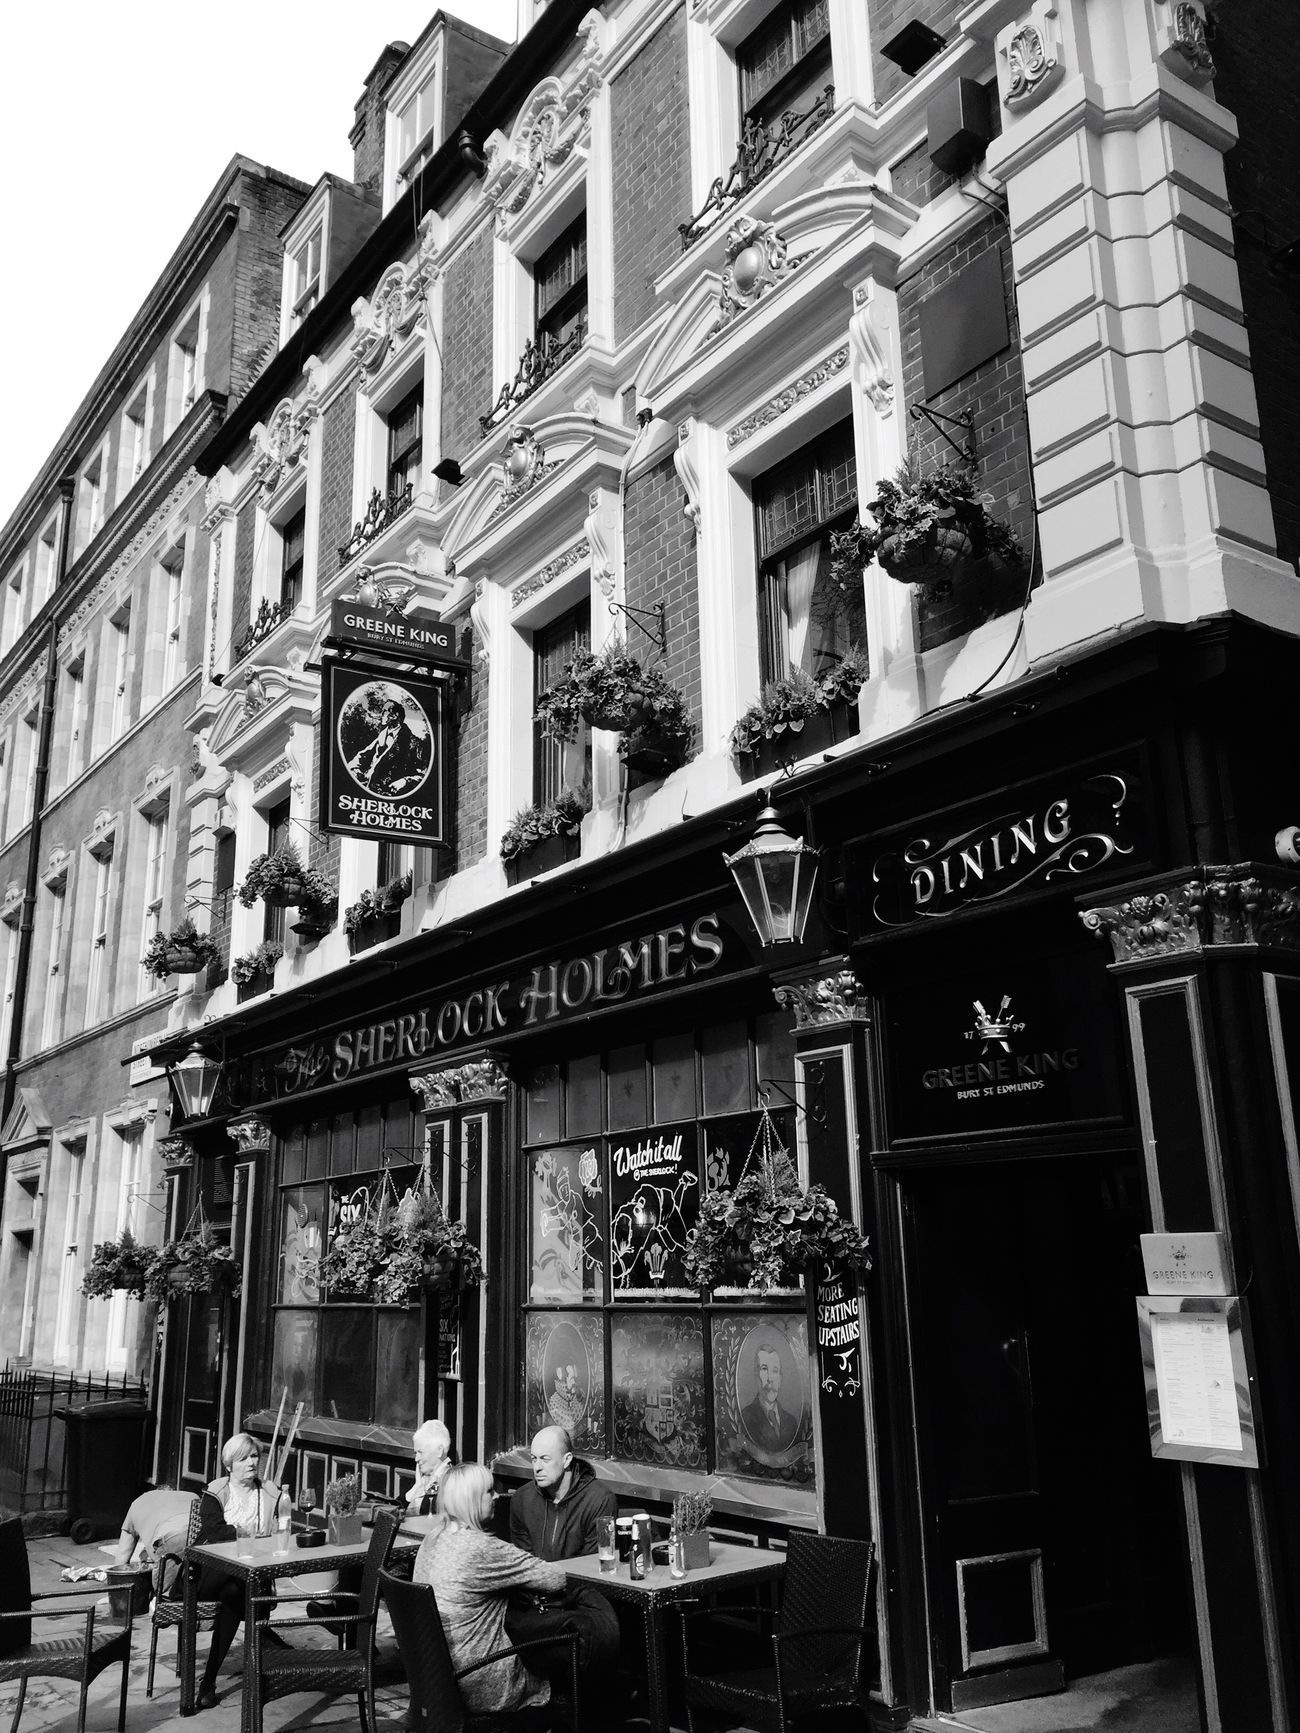 Window Architecture Day Building Exterior Westminster London City Pub The Street Photographer - 2017 EyeEm Awards